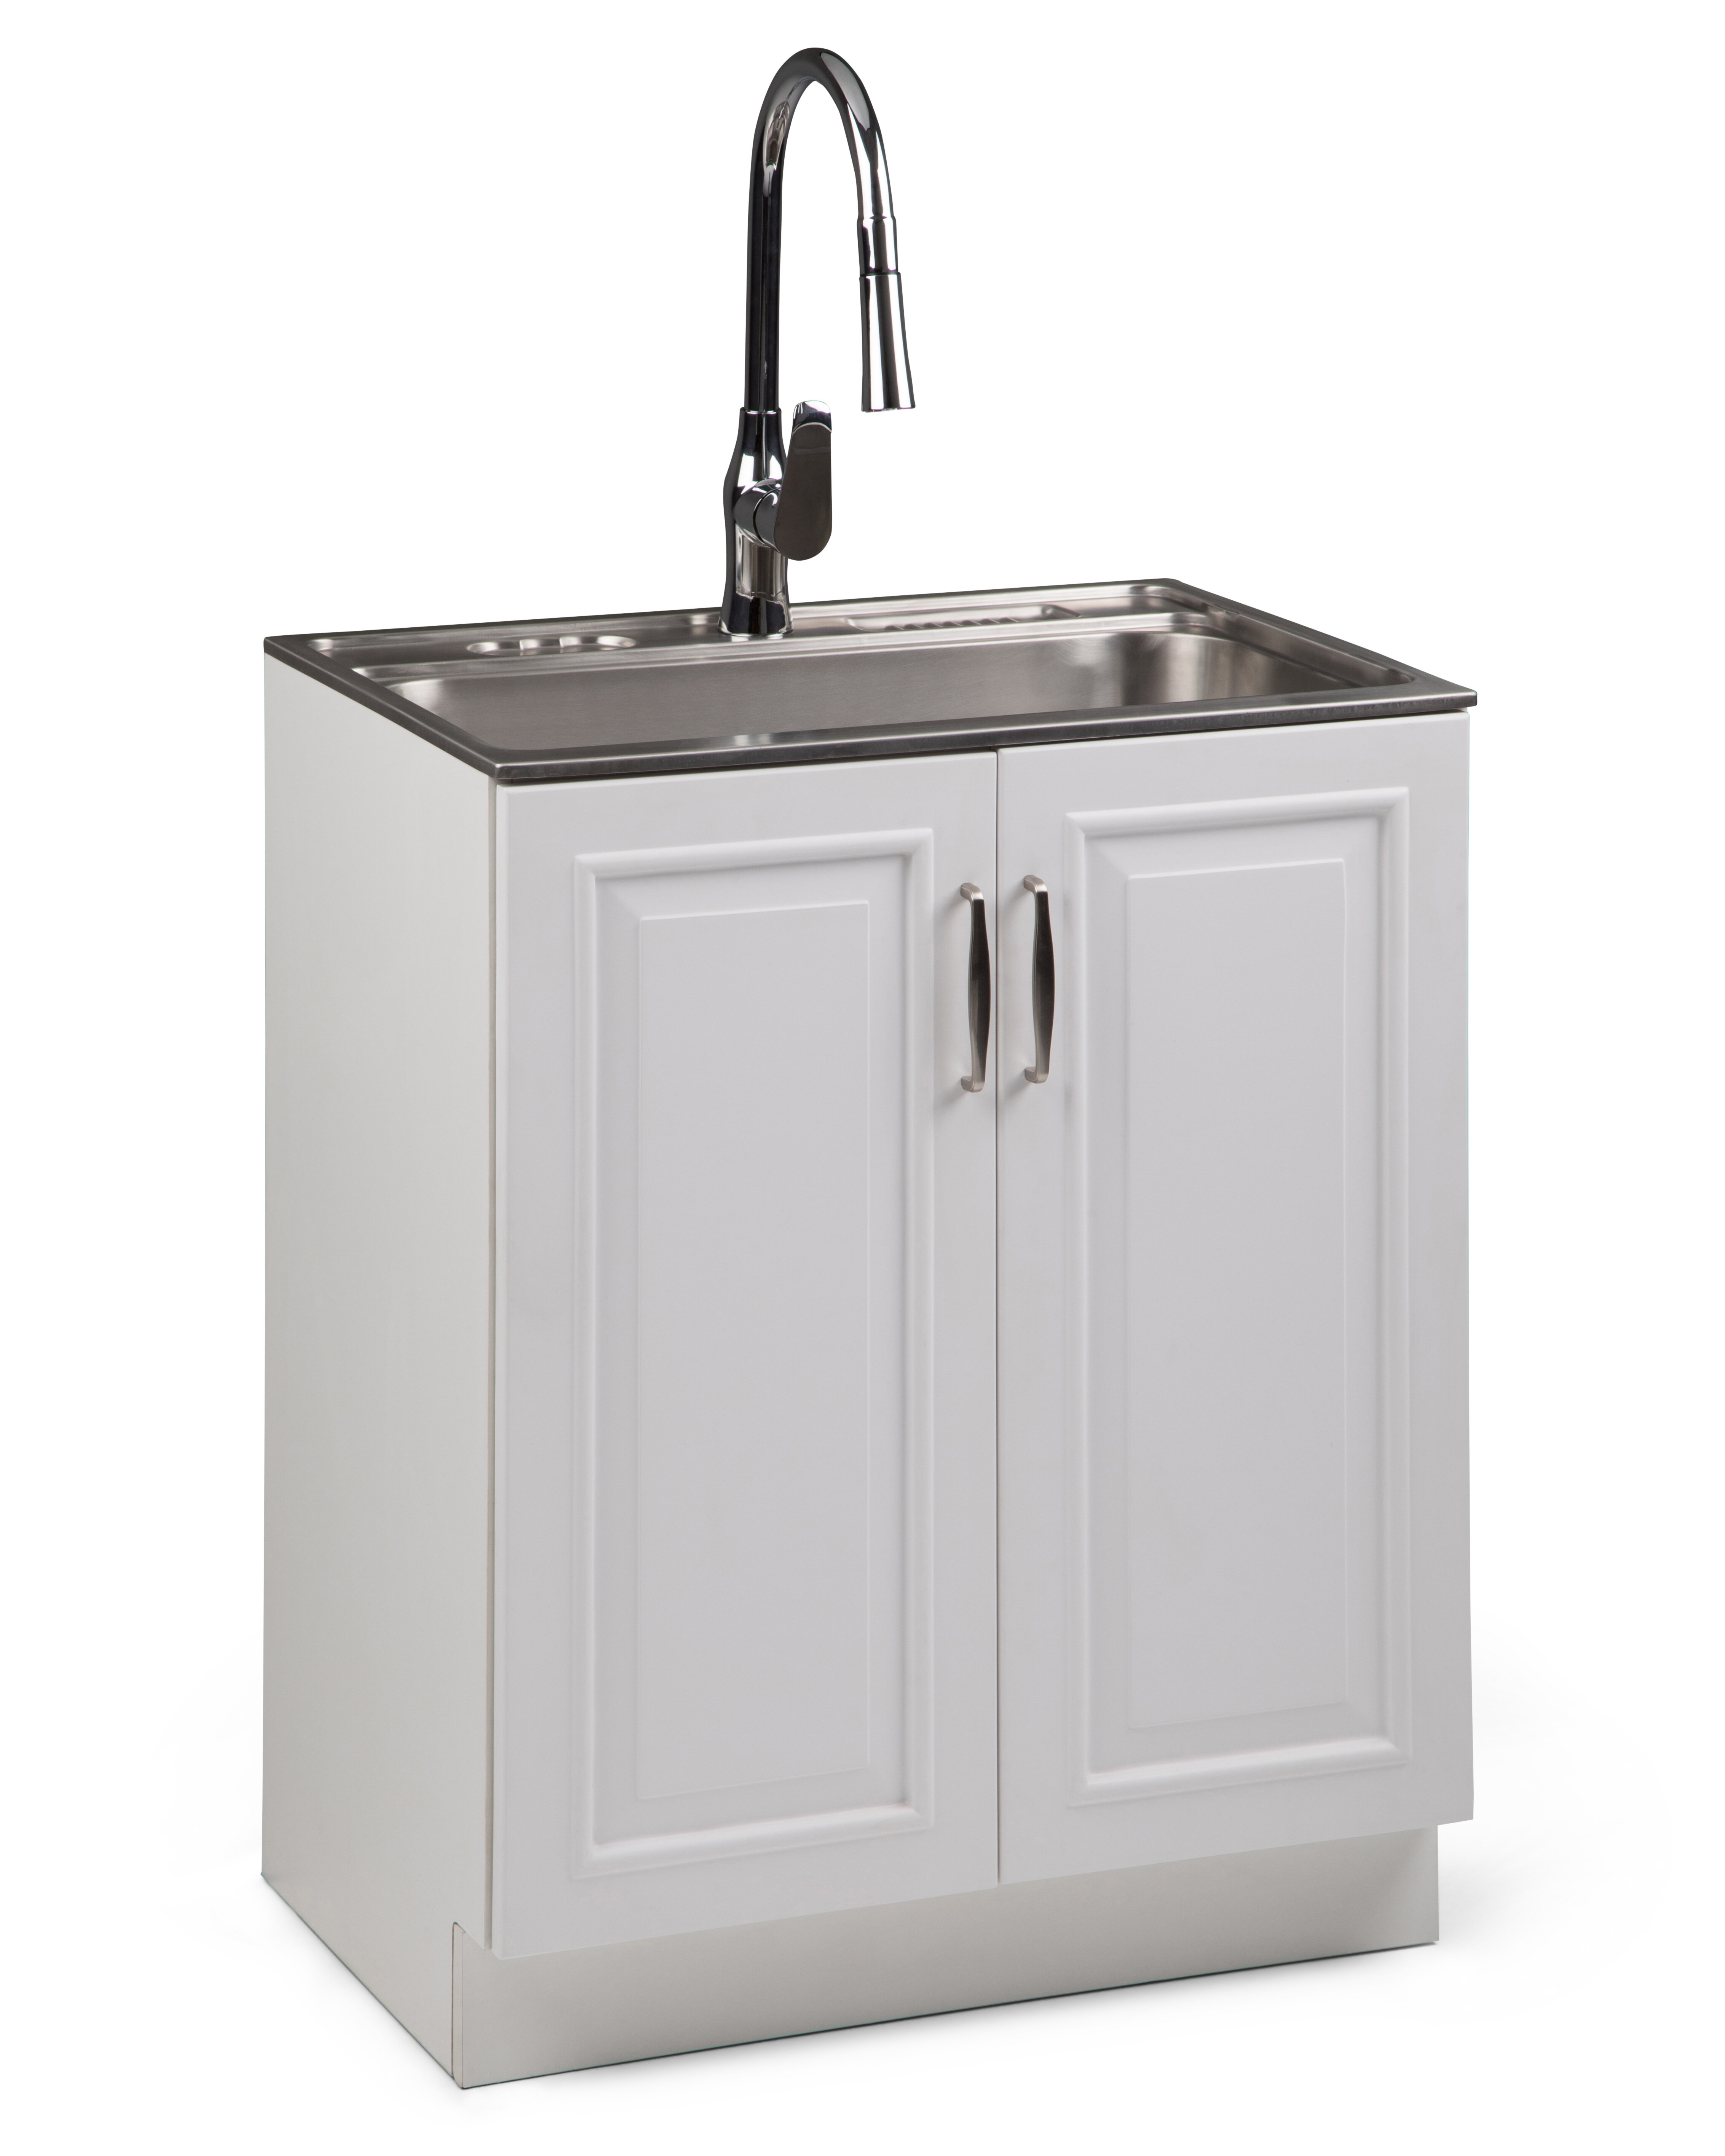 Darby Home Co Botelho 28 X Freestanding Laundry Sink With Faucet Wayfair